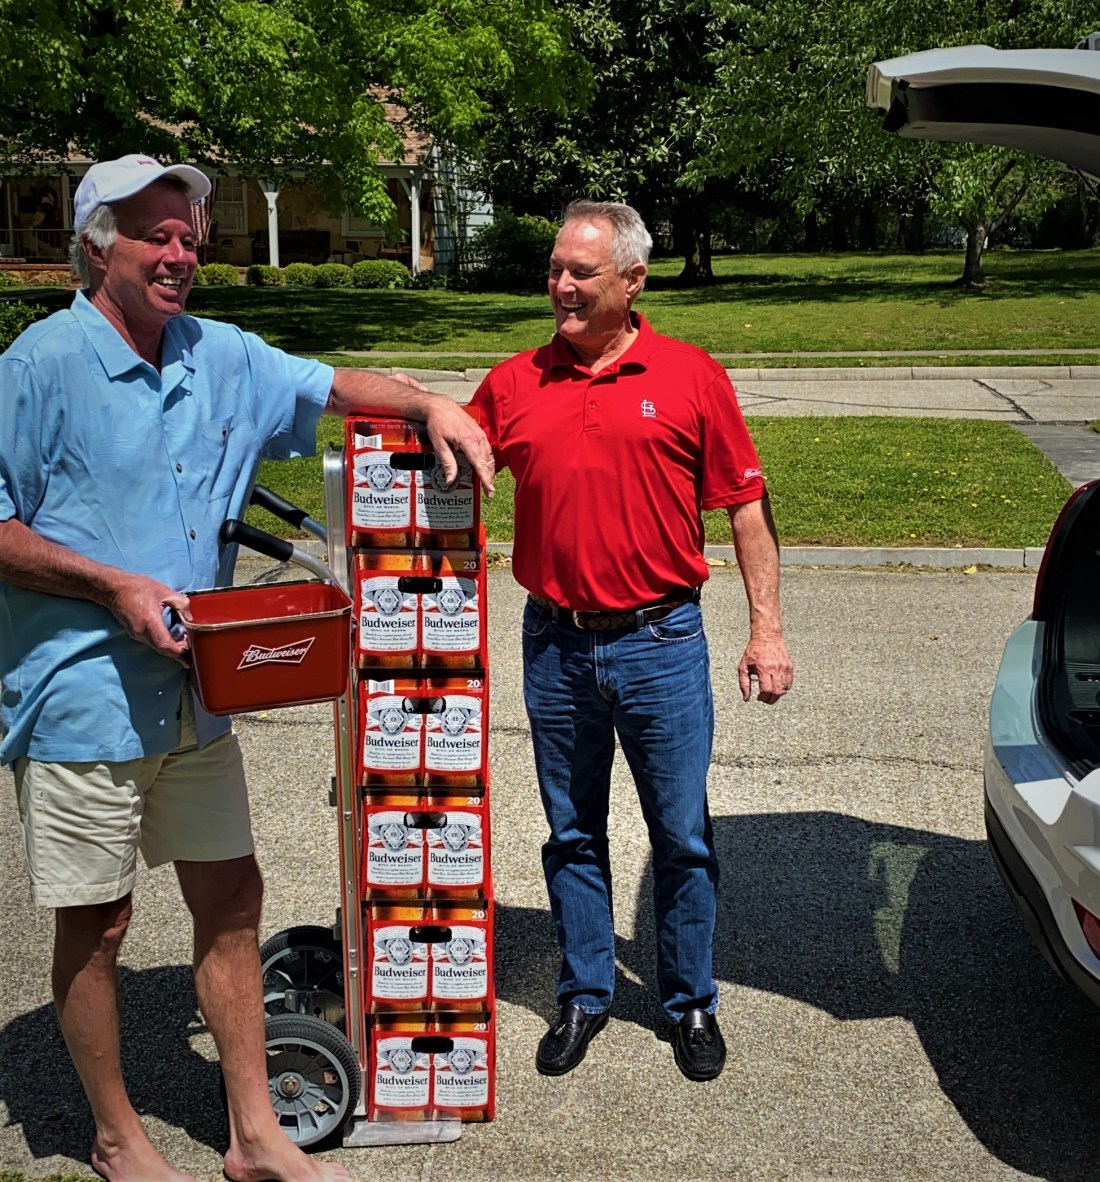 A picture of Mike Pound and Alan Beaver. Between the two of them is a stack of six, 20-packs of bottled budweiser